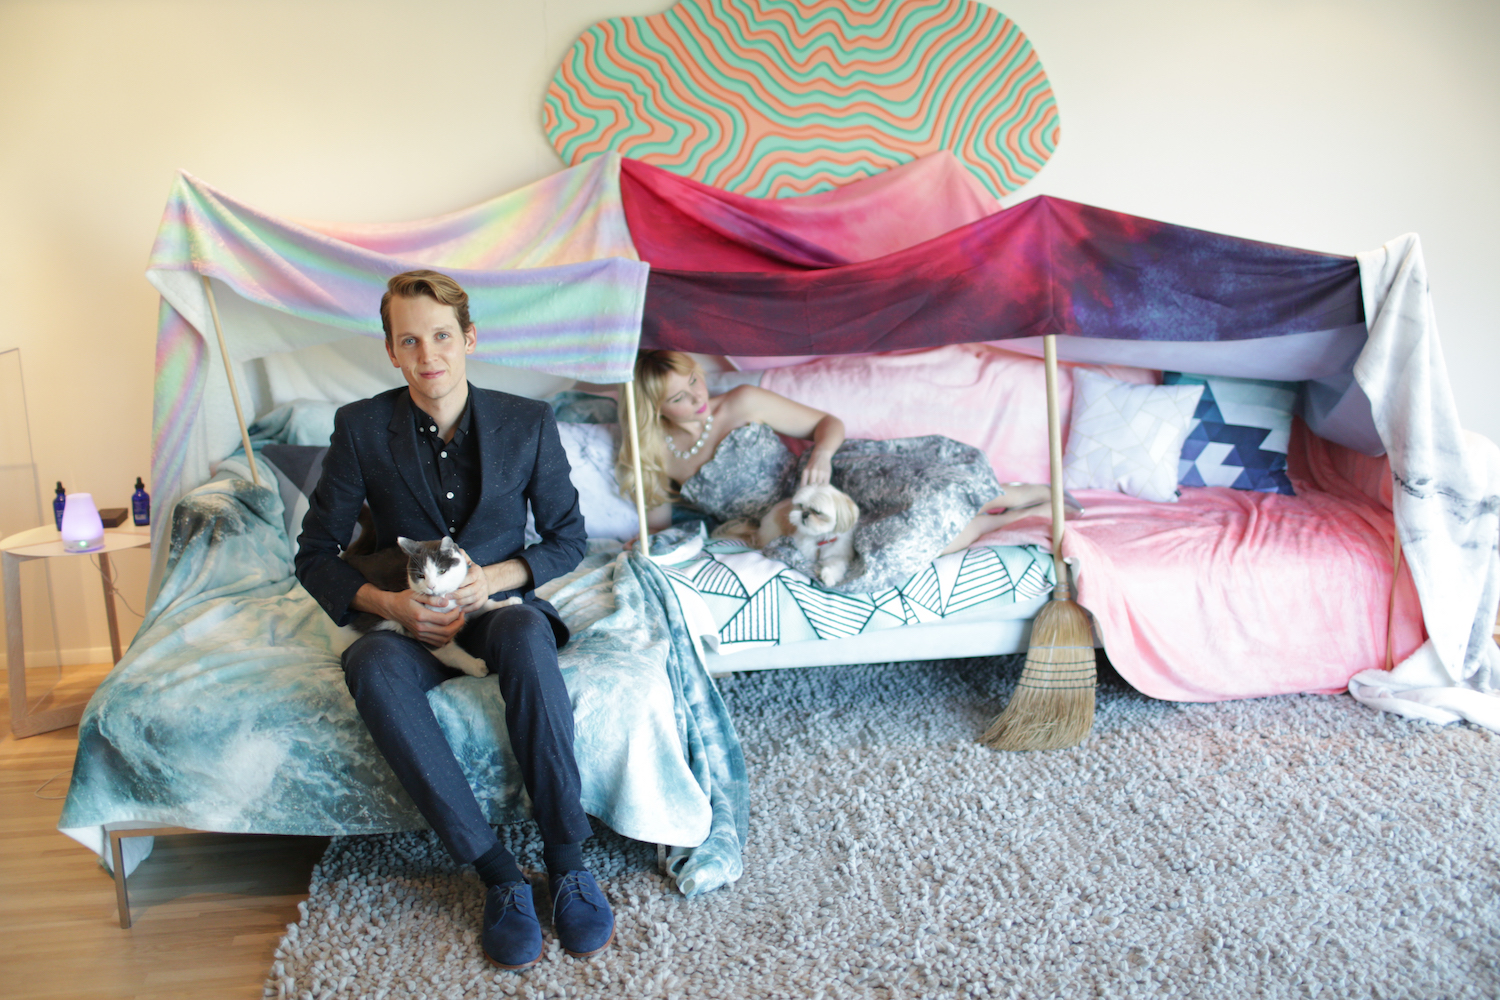 How To Build A Blanket Fort For Adults Society6 Blog